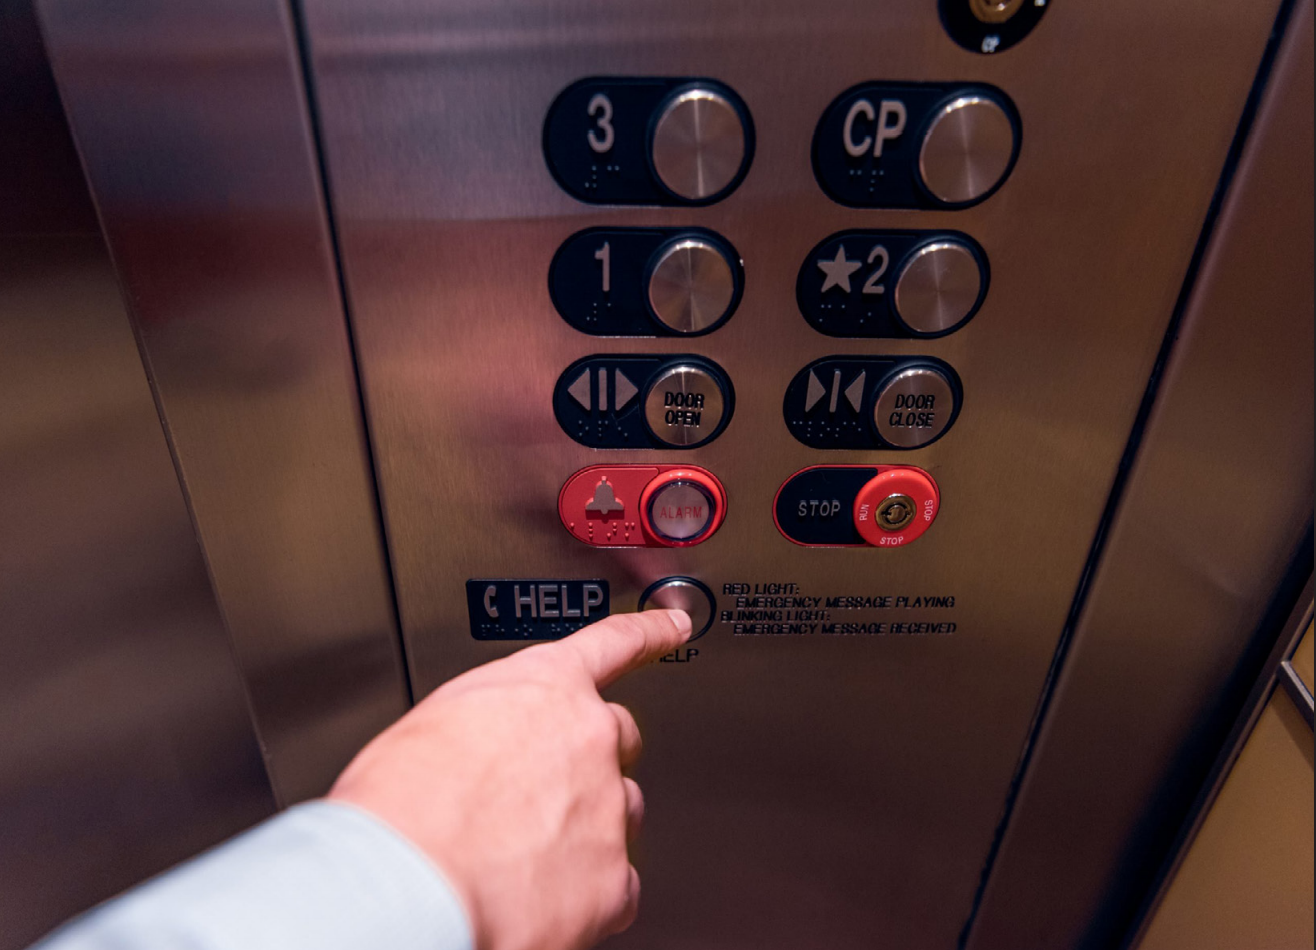 After decades, 'Creepy' elevator getting updated